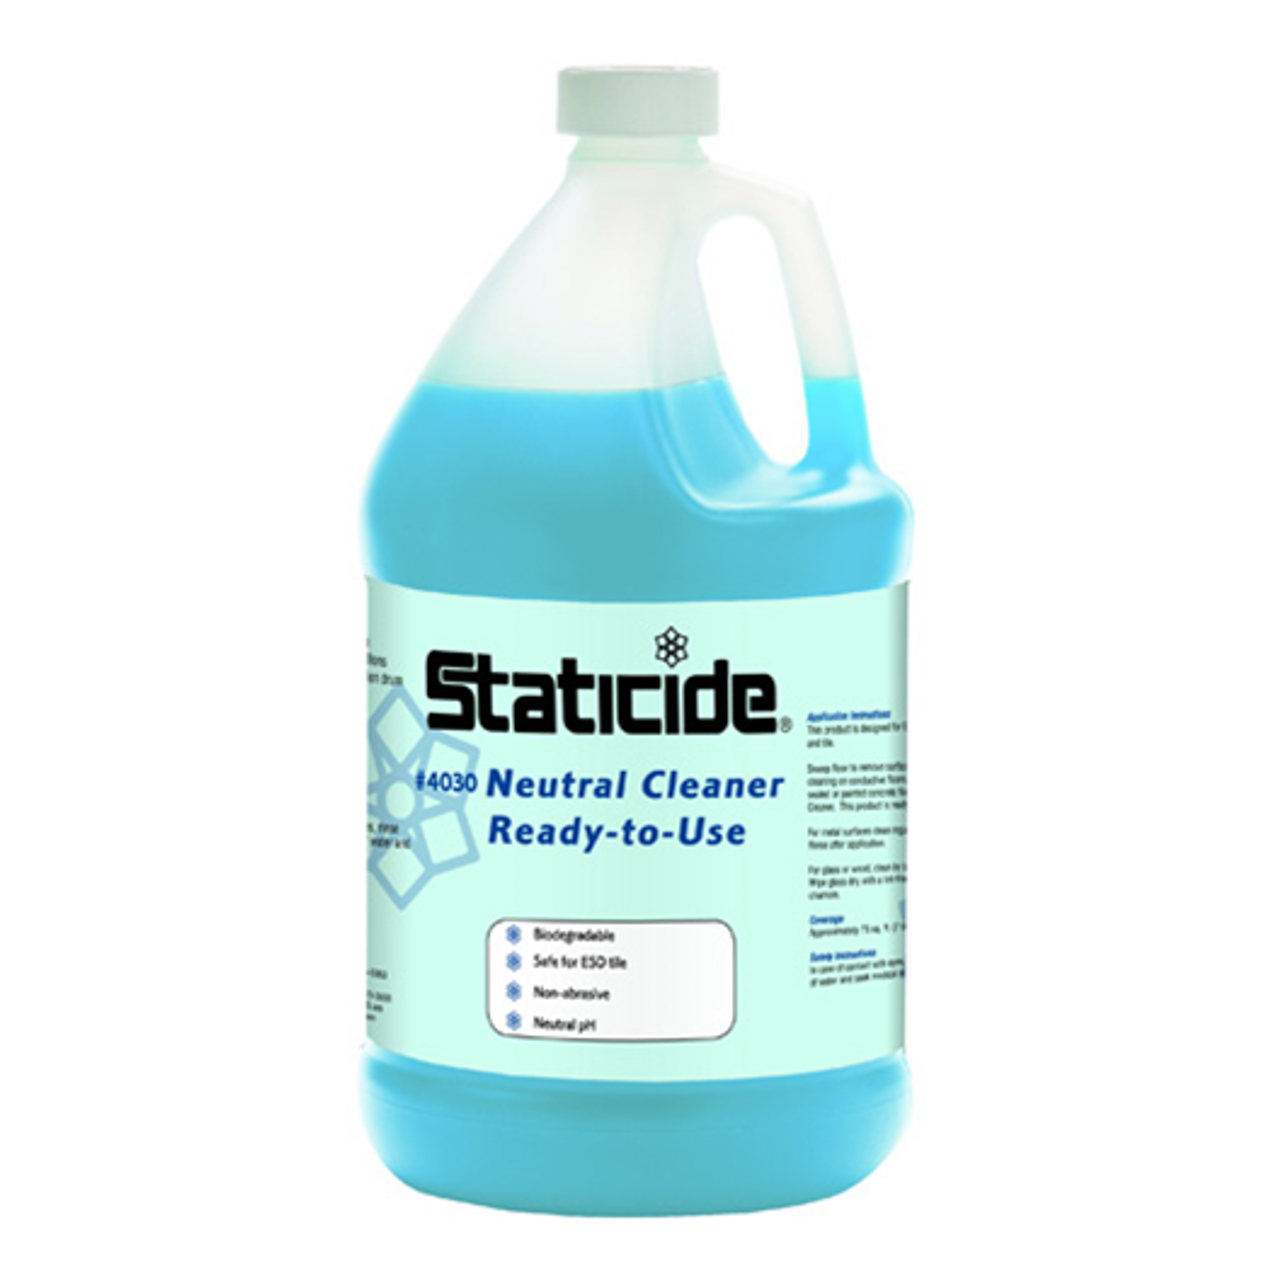 Staticide Neutral Cleaner Ready-to-Use